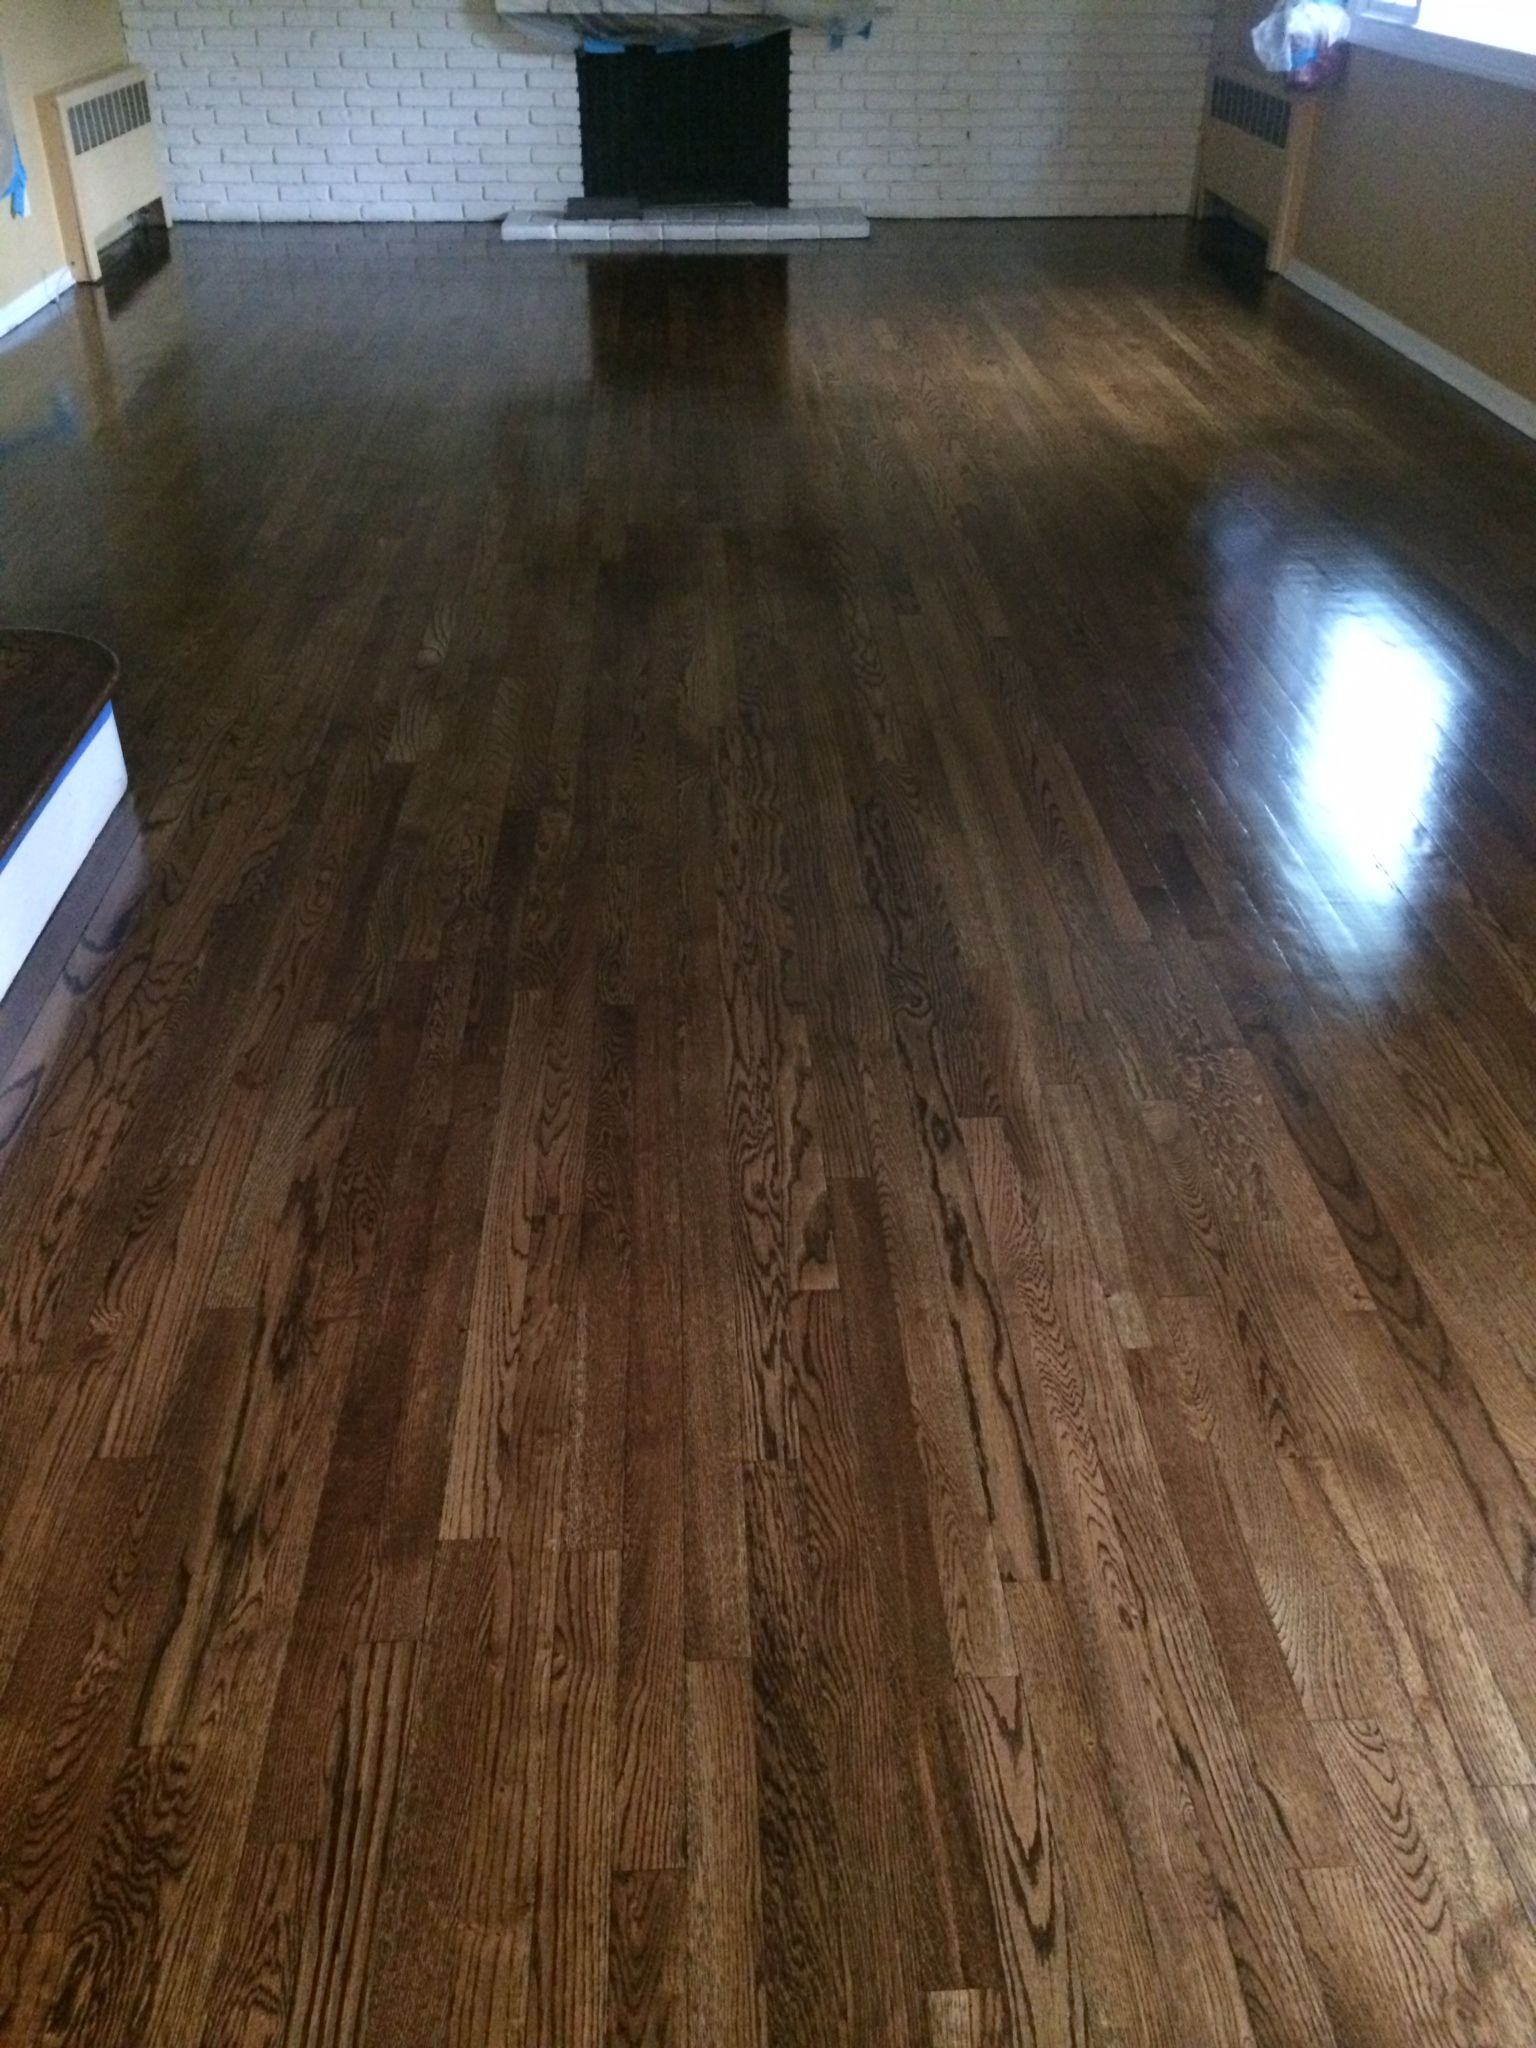 Dark Walnut Stained Floors Very Trendy Right Now Hardwood